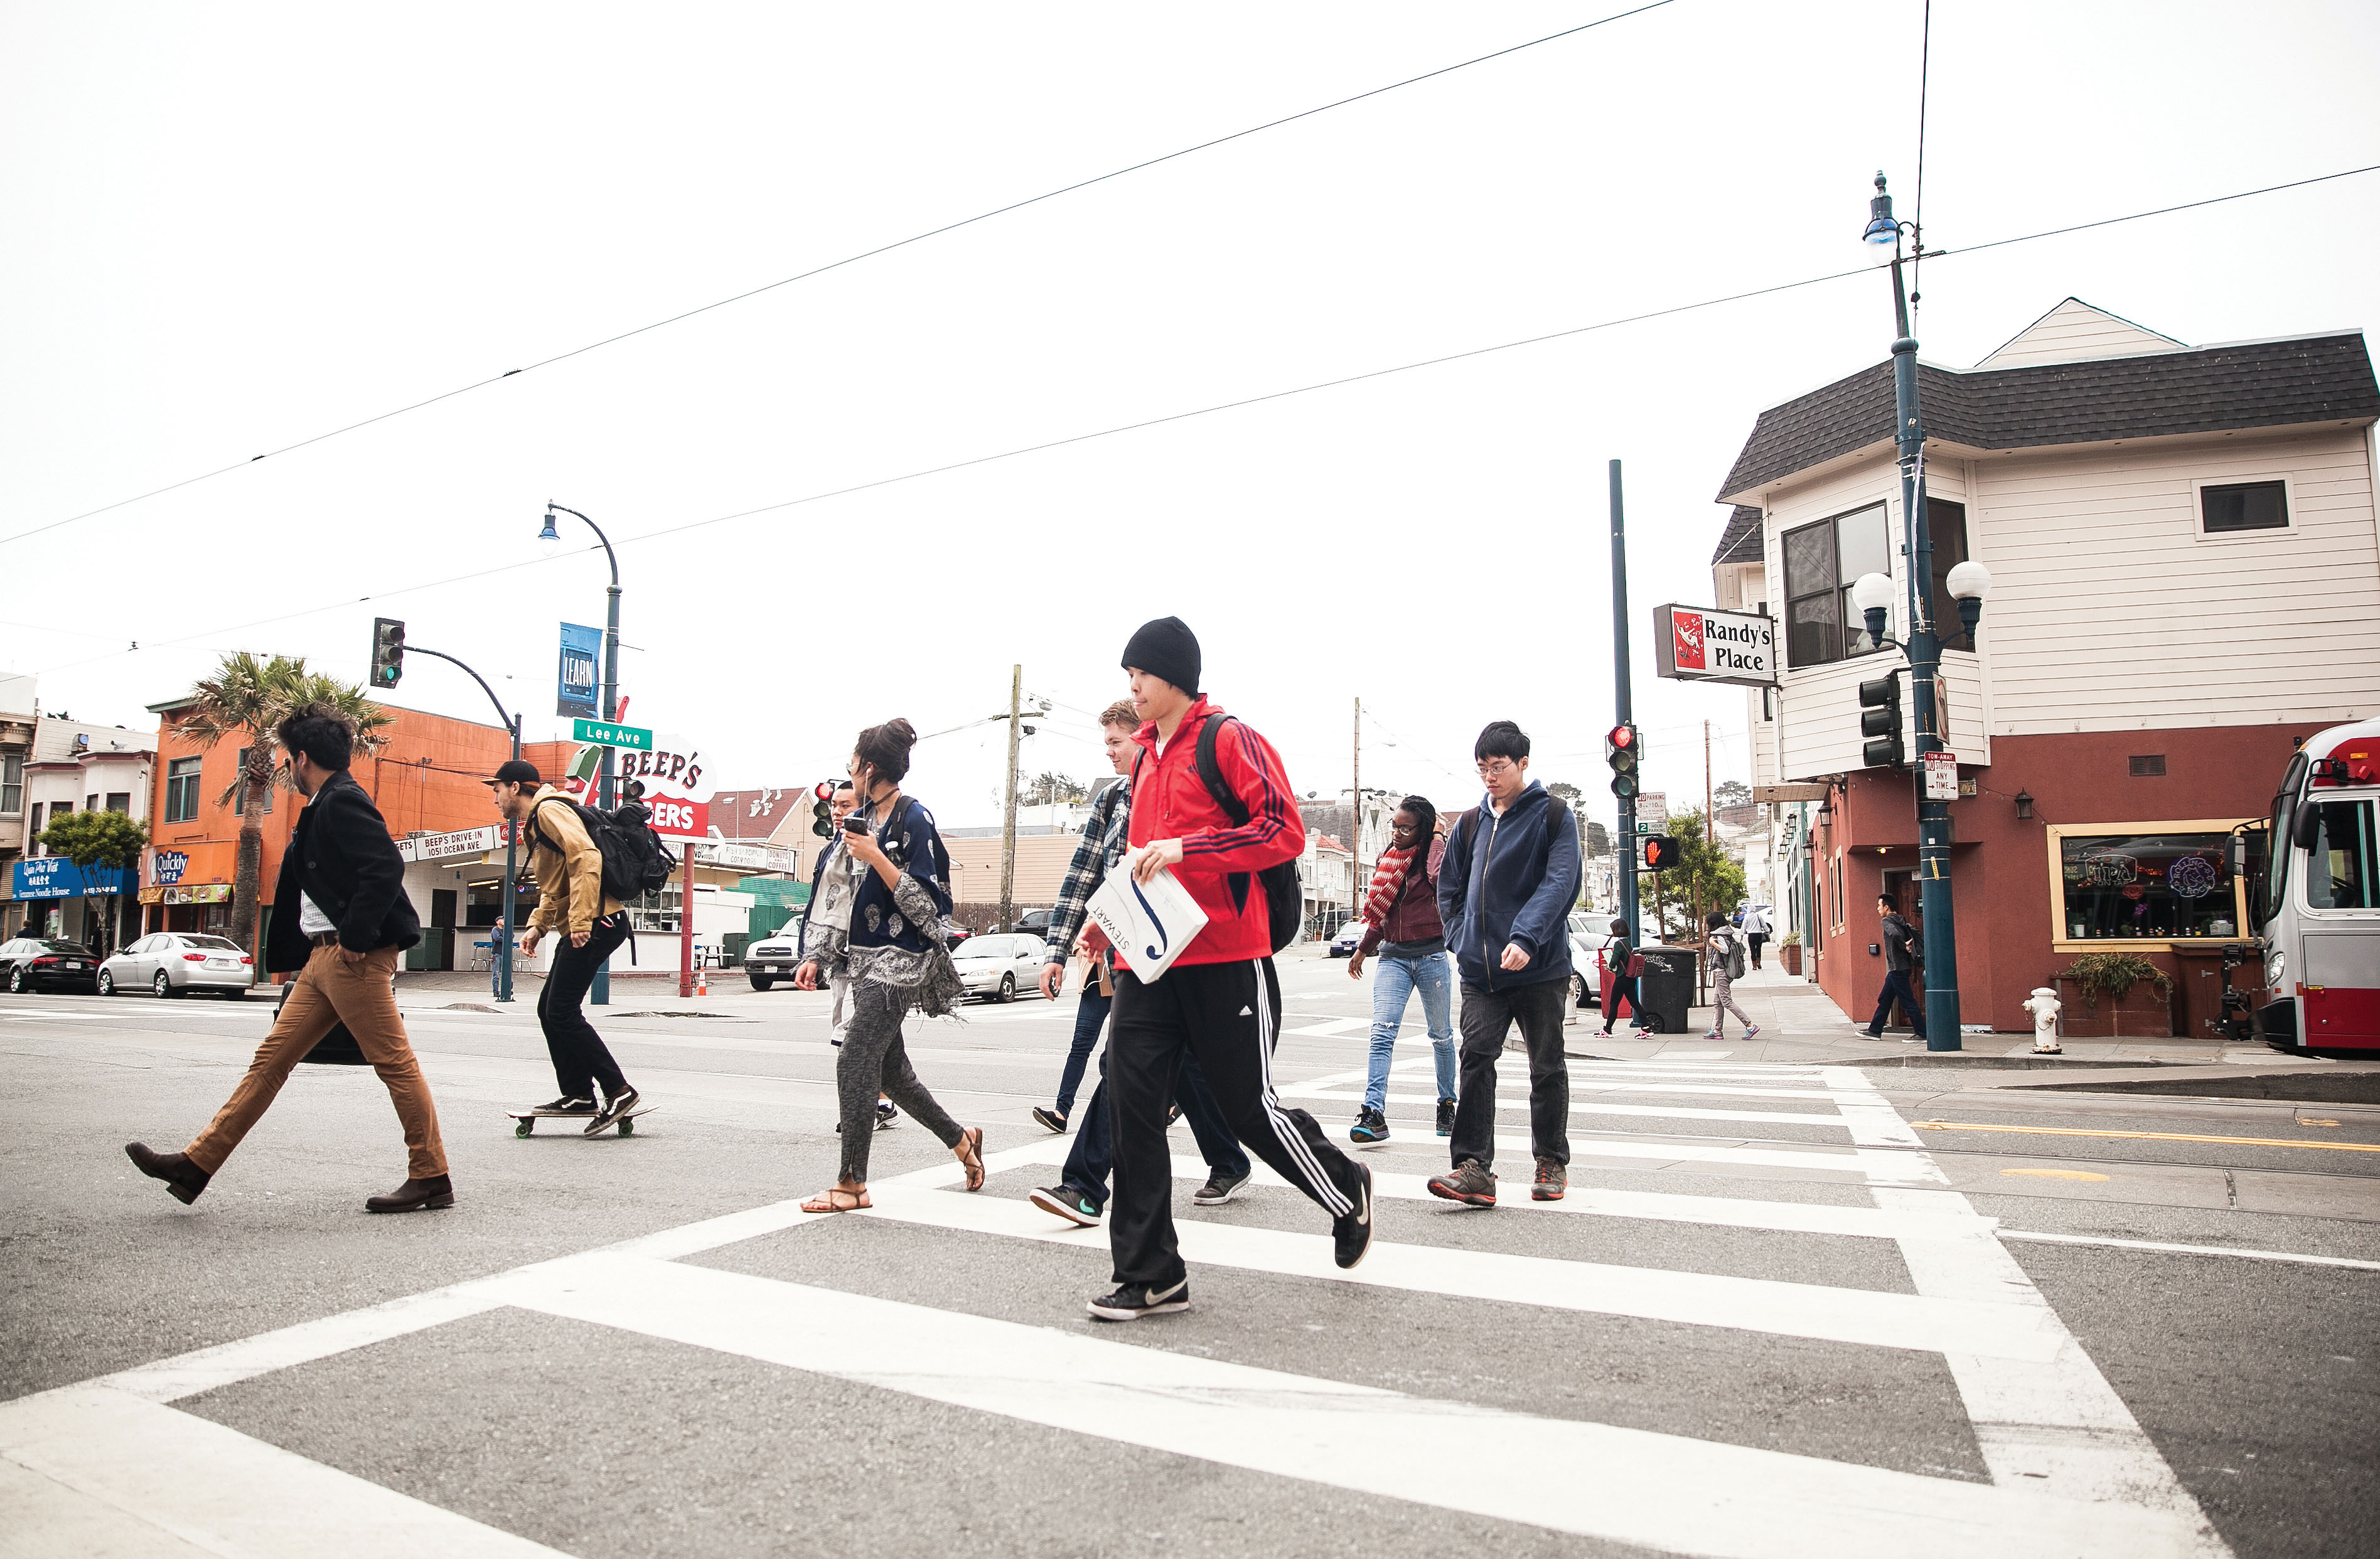 City College students cross the street on a red light after getting off the bus on Ocean and Lee avenues, Monday, May 11. (Photo by Ekevara Kitpowsong)